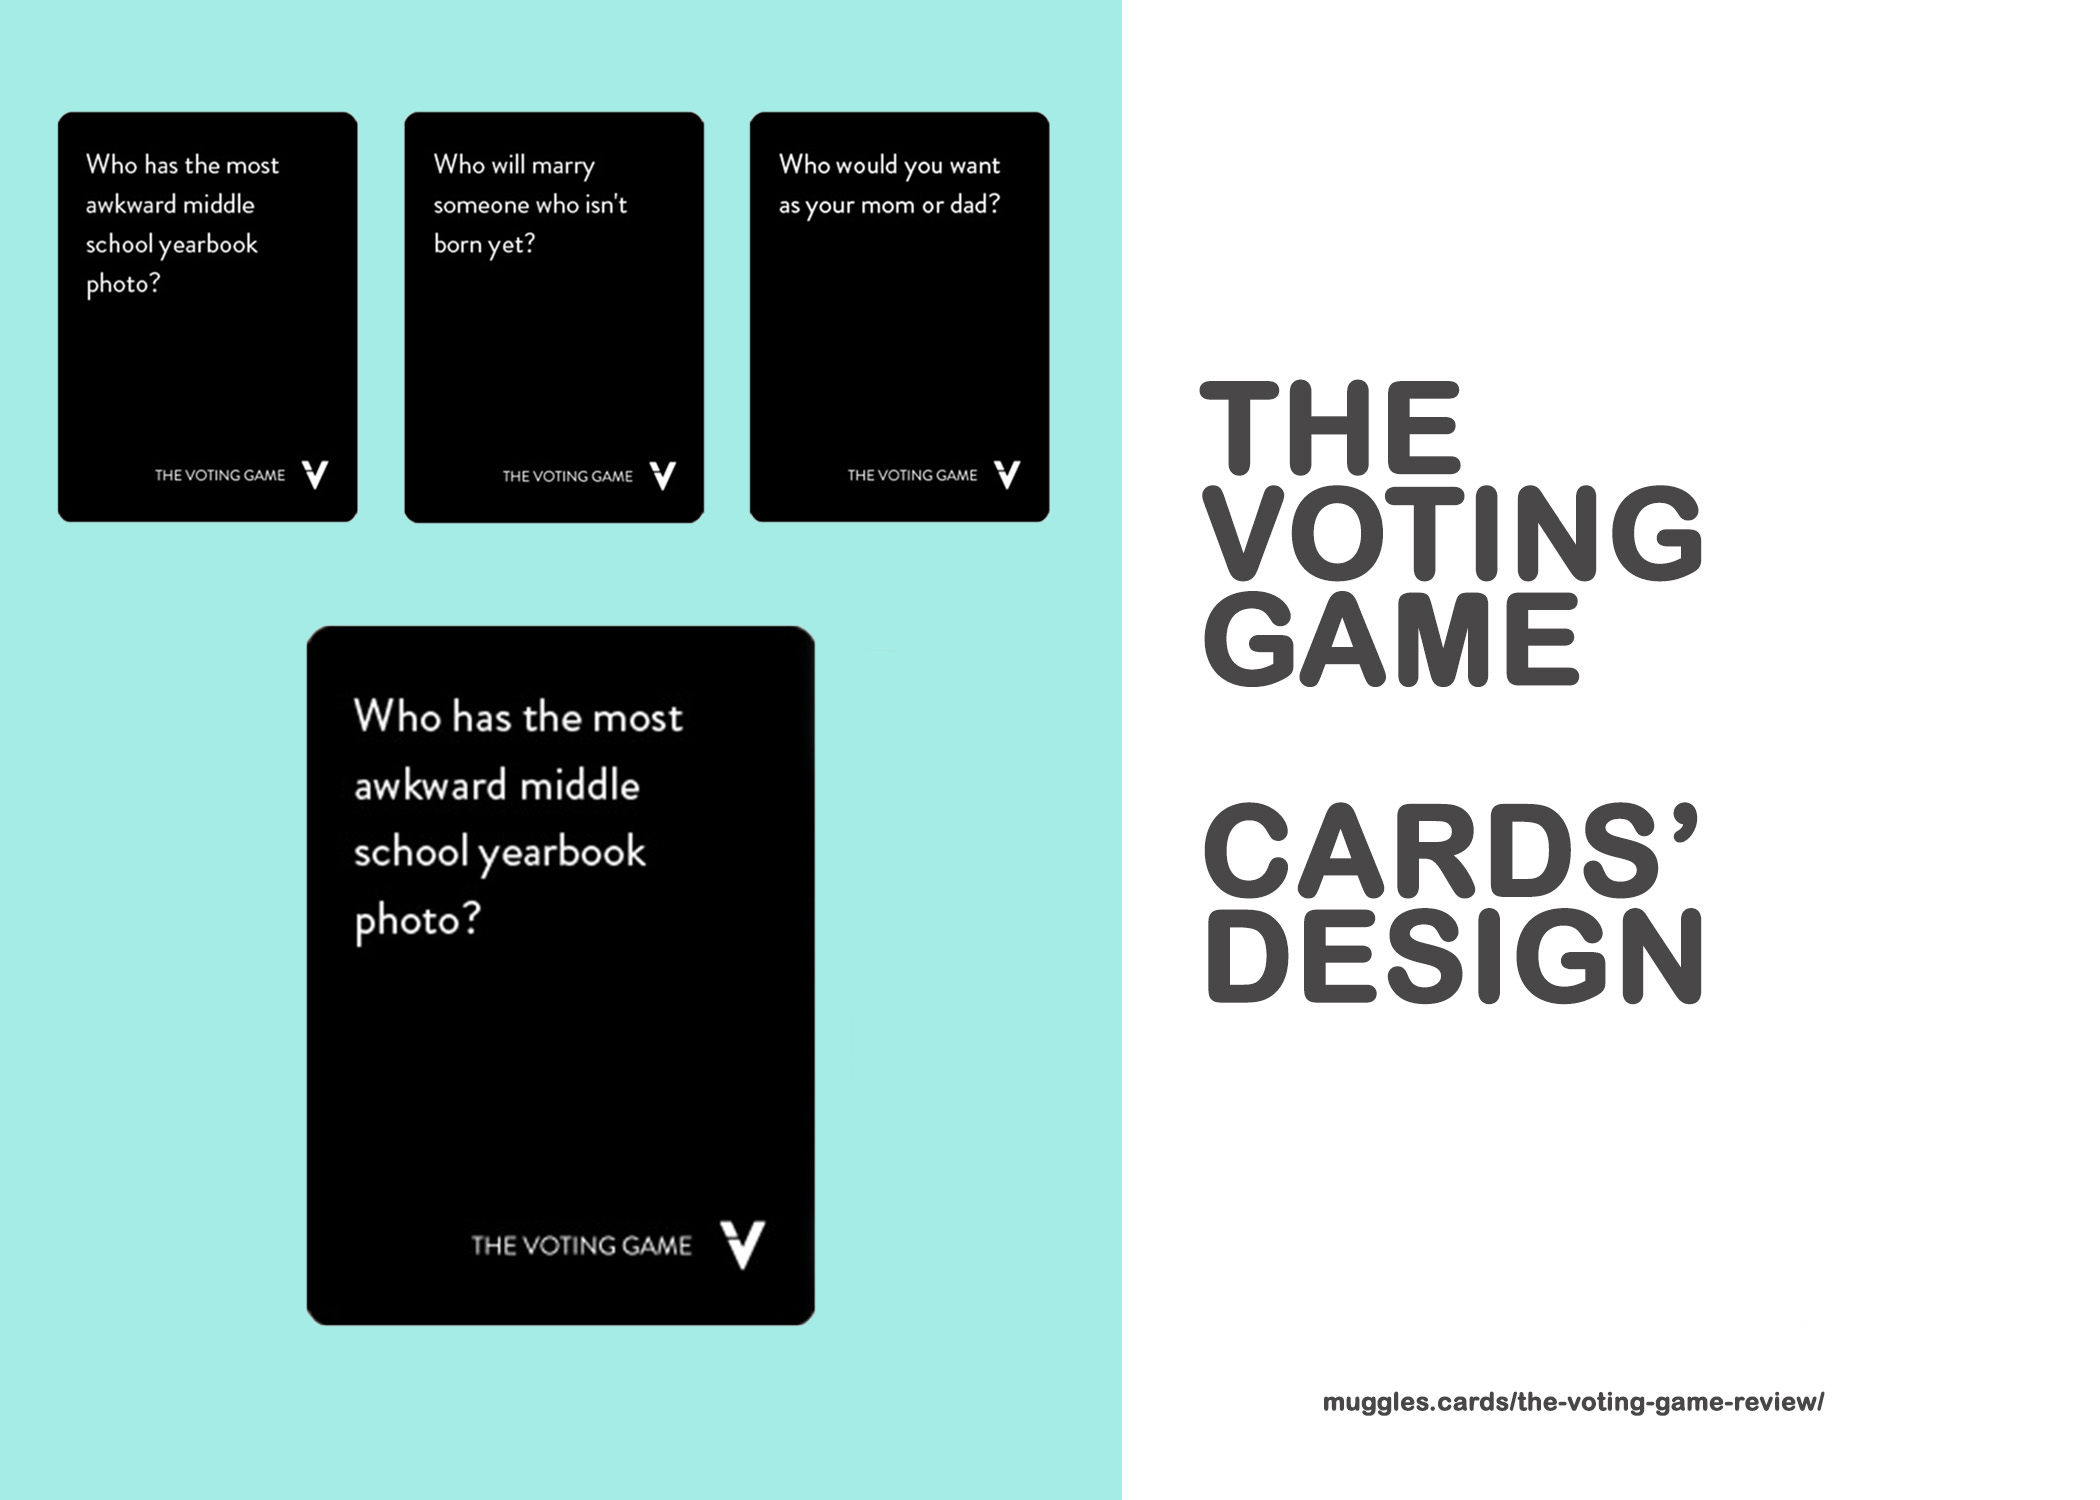 The Voting Game CARDS DESIGN